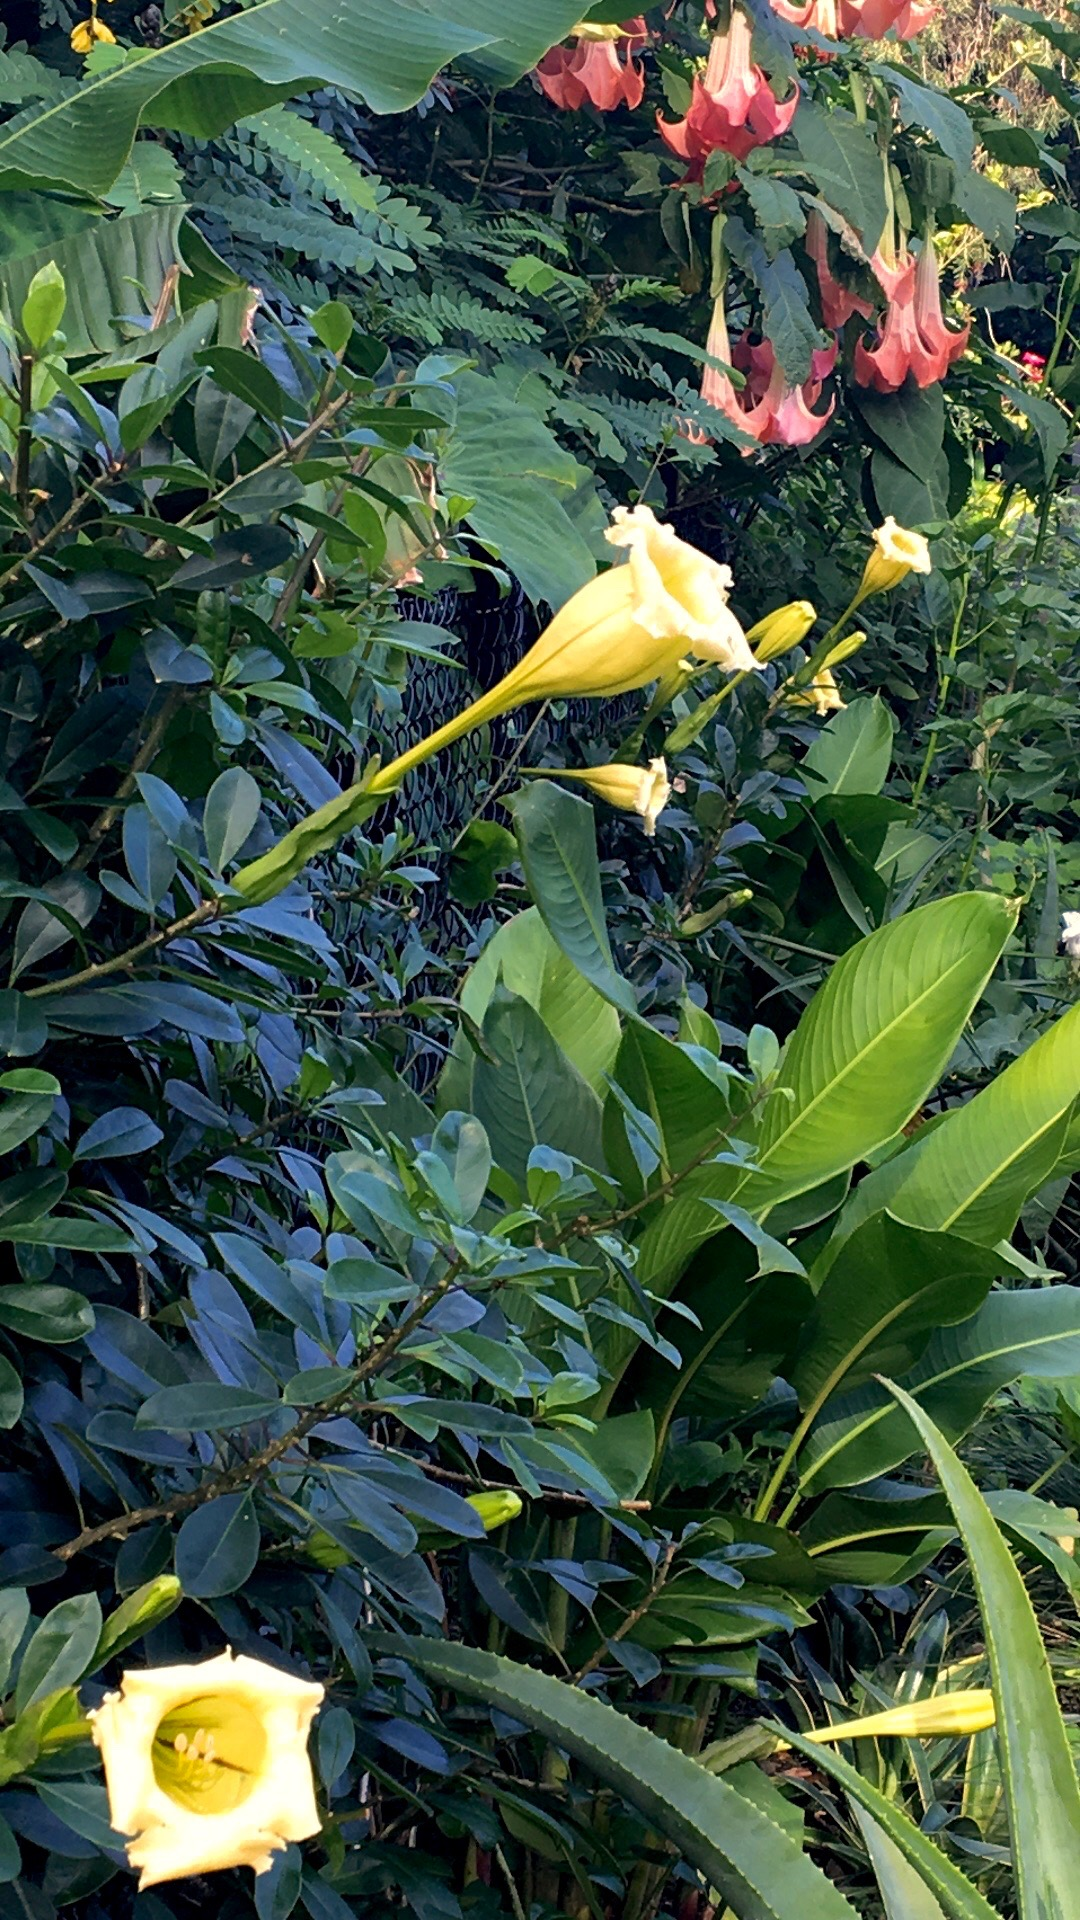 Solandra longiflora a medium weight climber for frost free cool sub-tropics